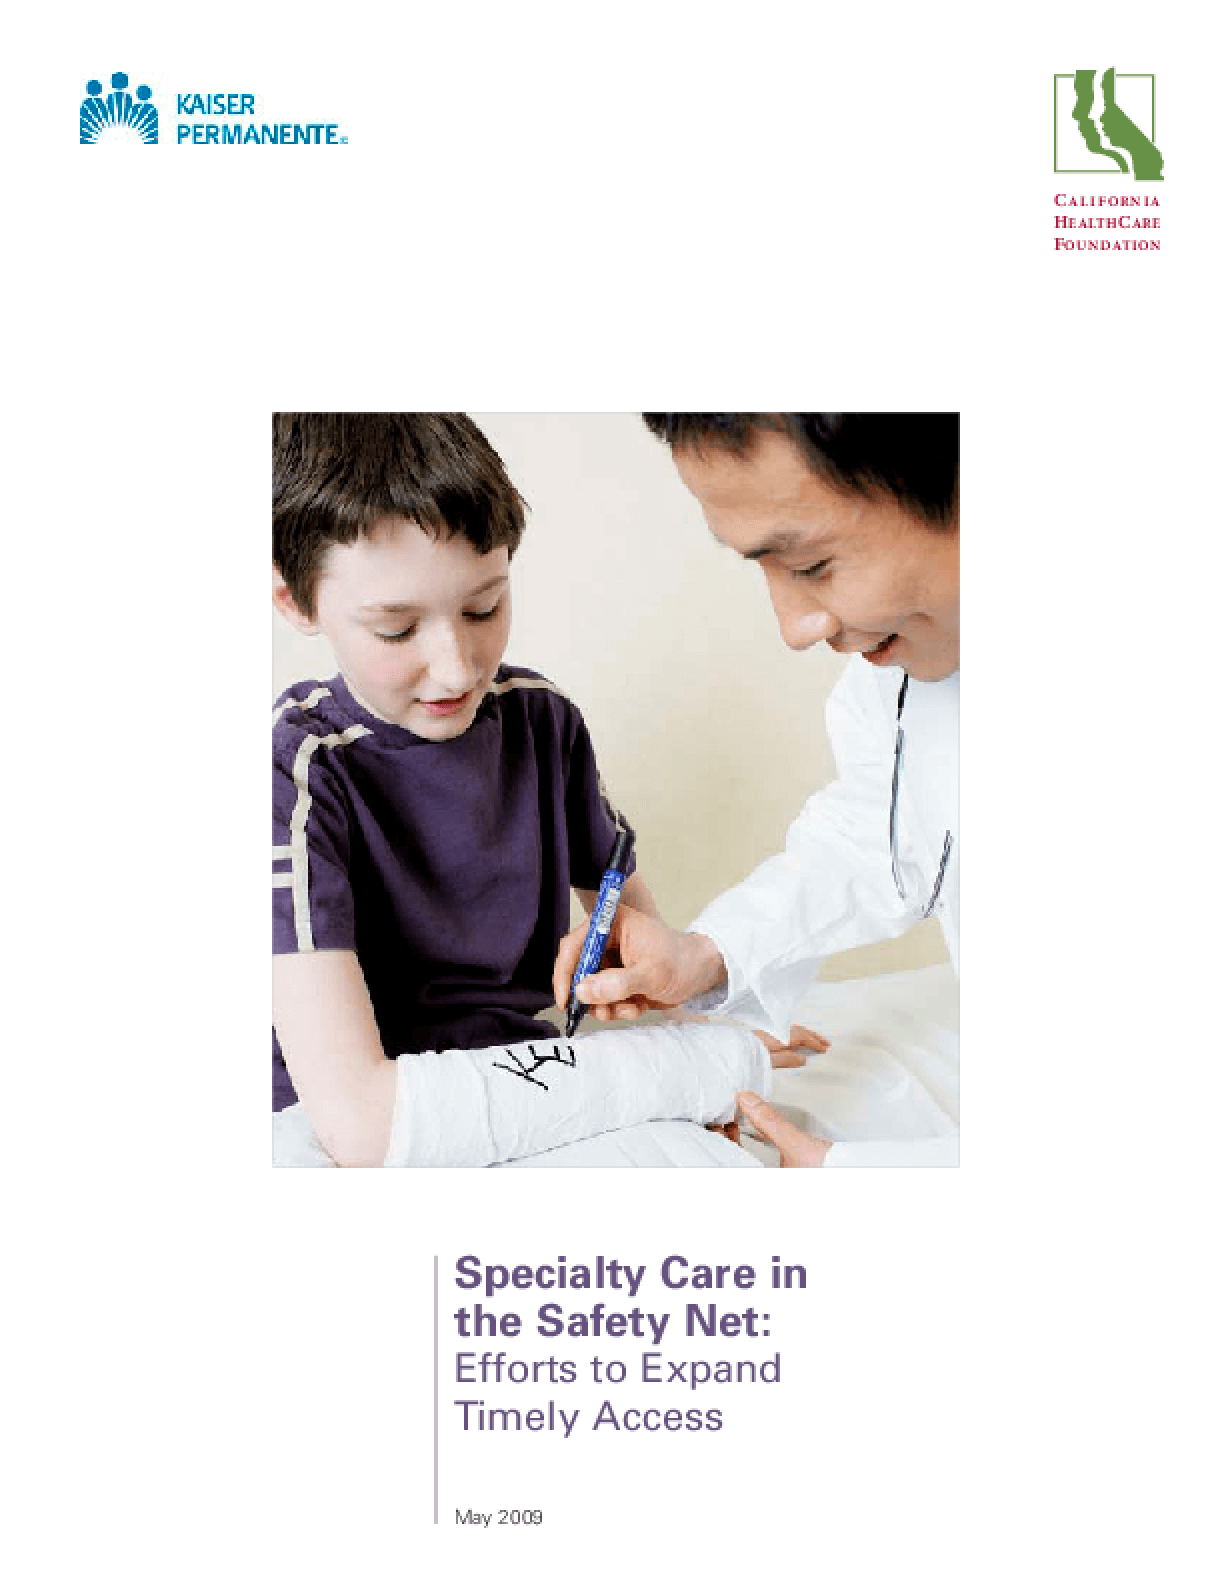 Specialty Care in the Safety Net: Efforts to Expand Timely Access